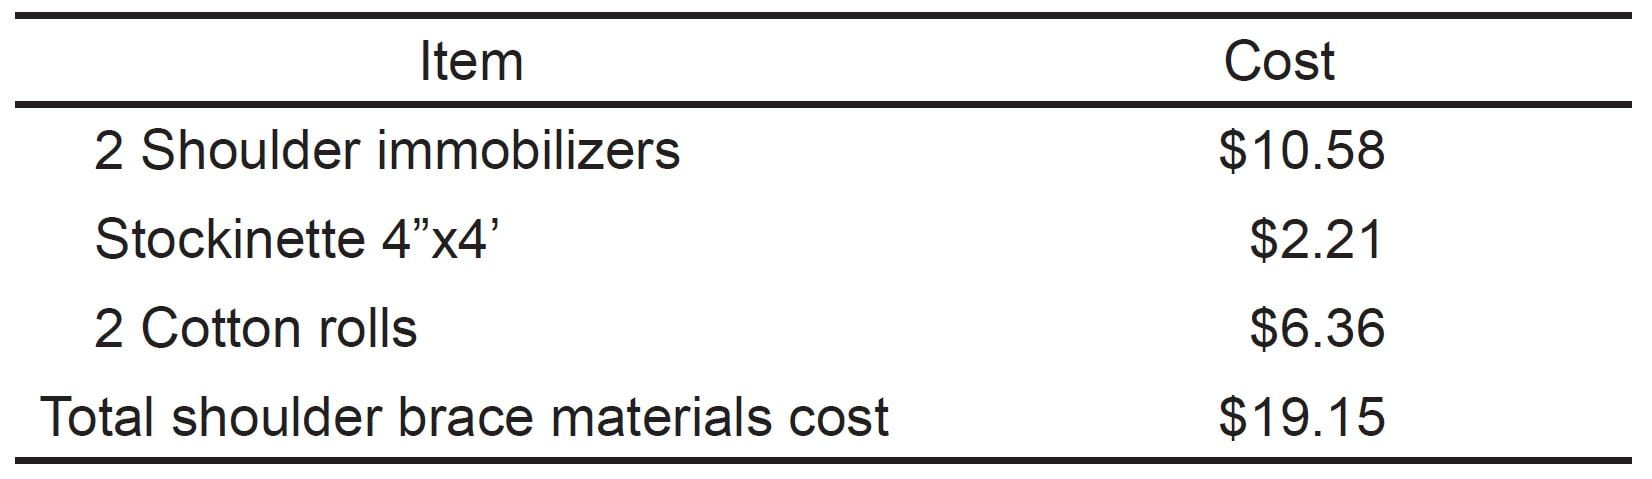 d070bbc344 Itemized materials cost for the low-cost external rotation shoulder brace.